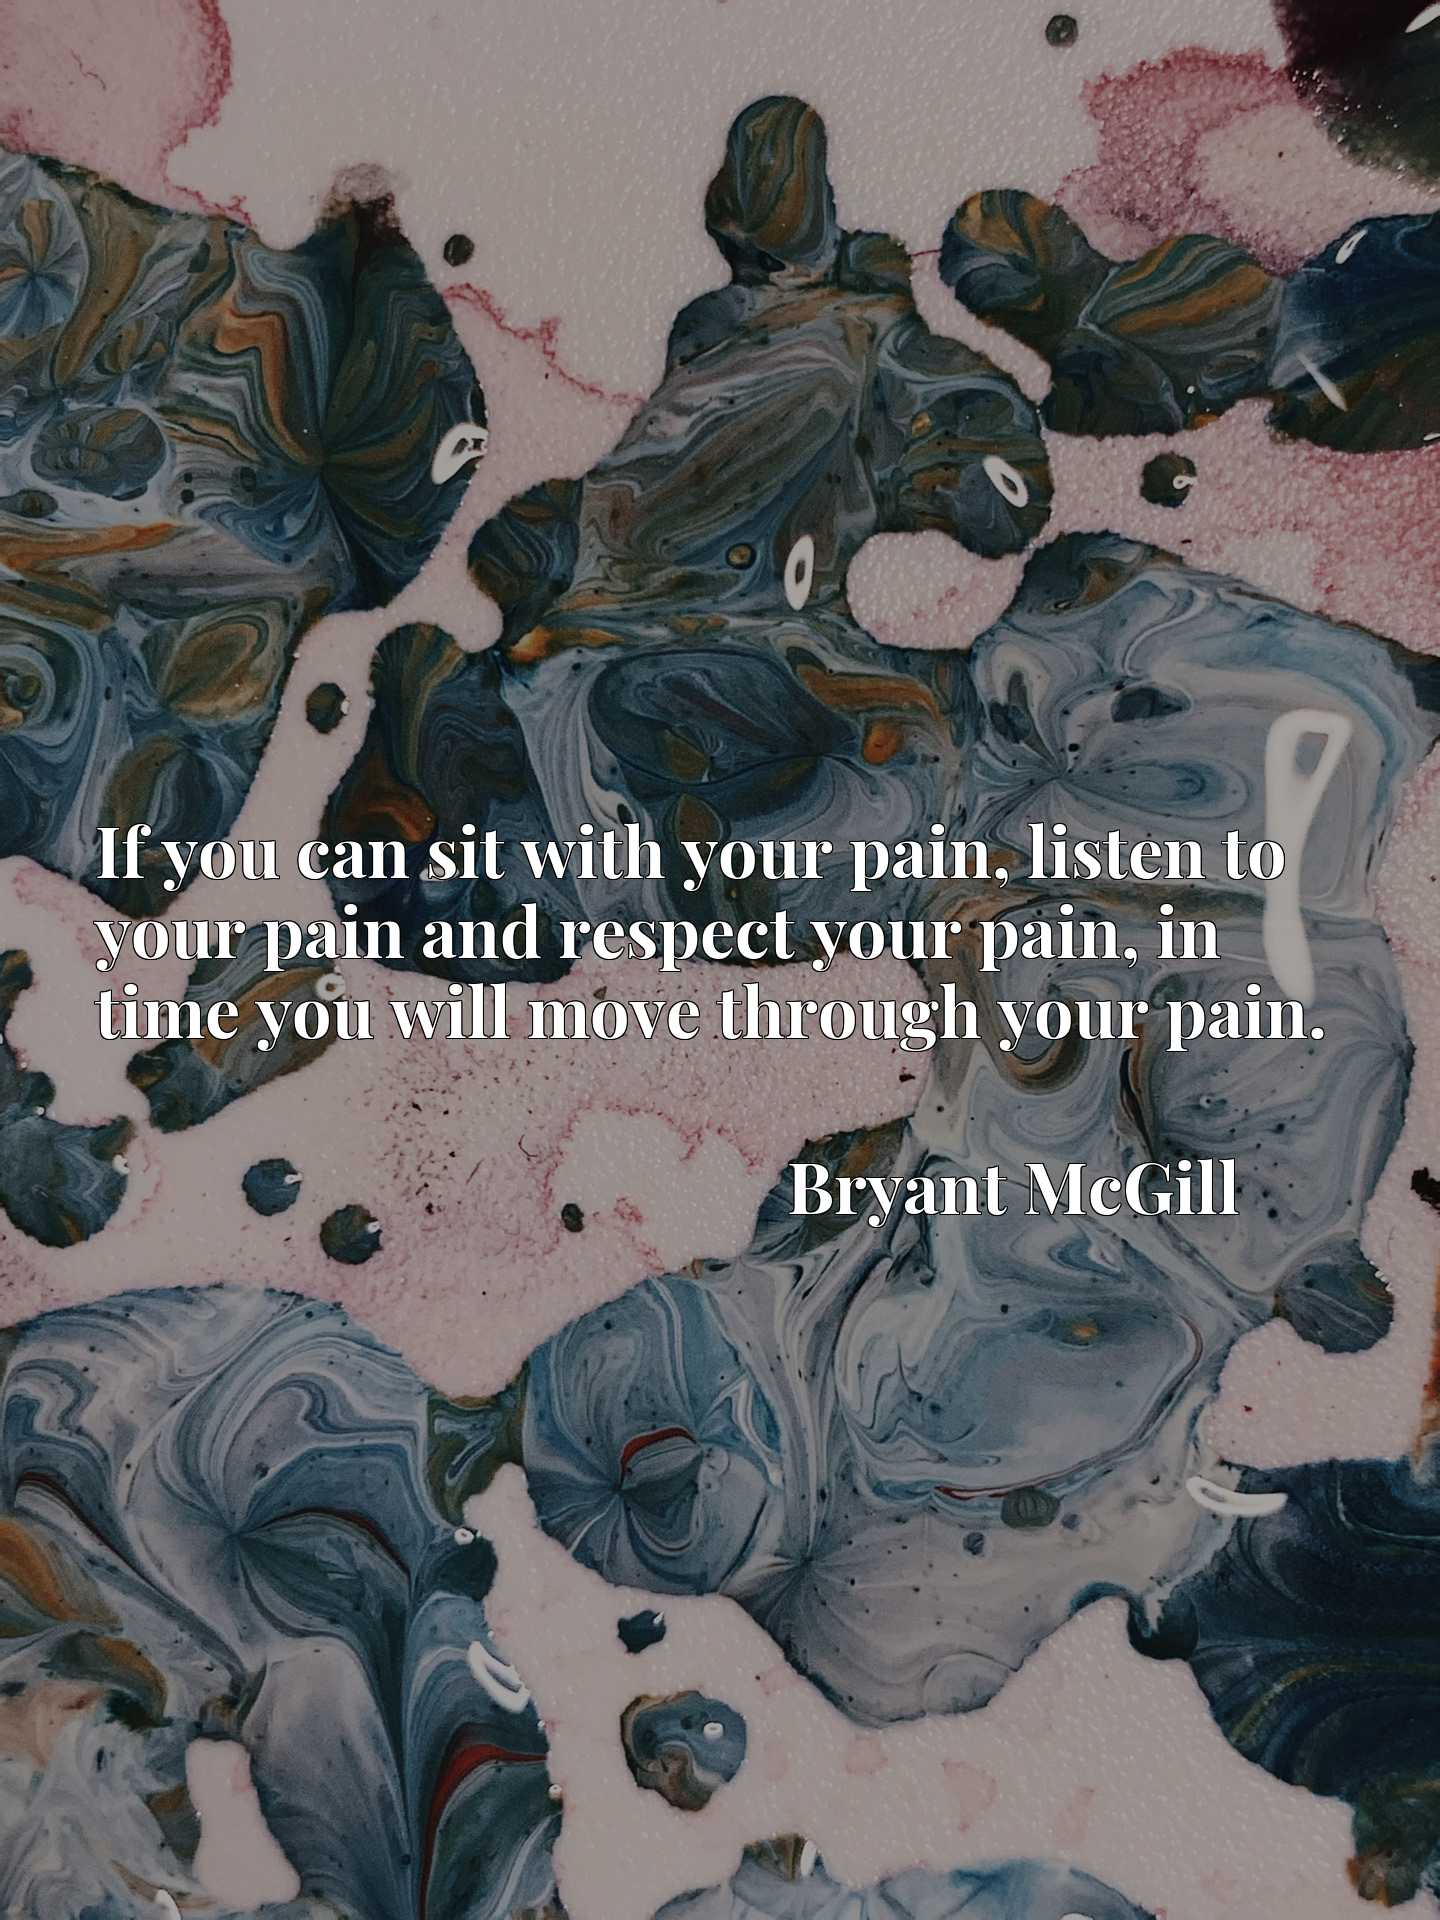 If you can sit with your pain, listen to your pain and respect your pain, in time you will move through your pain.